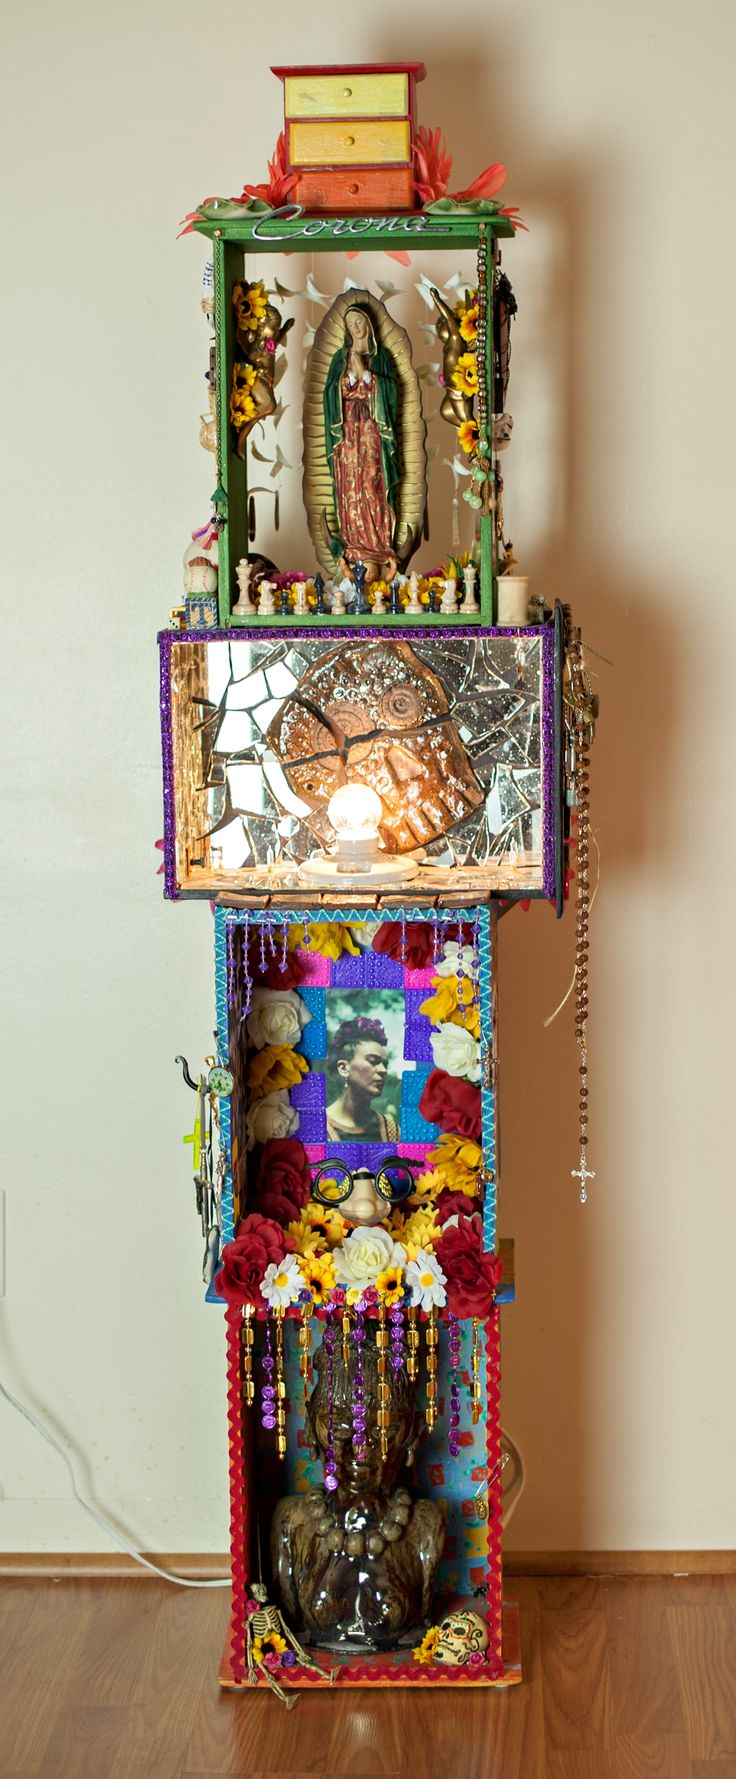 17 Best Images About Shrines And Altars On Pinterest: 695 Best ART: Shrines, Altars, Nichos & Retablos Images On